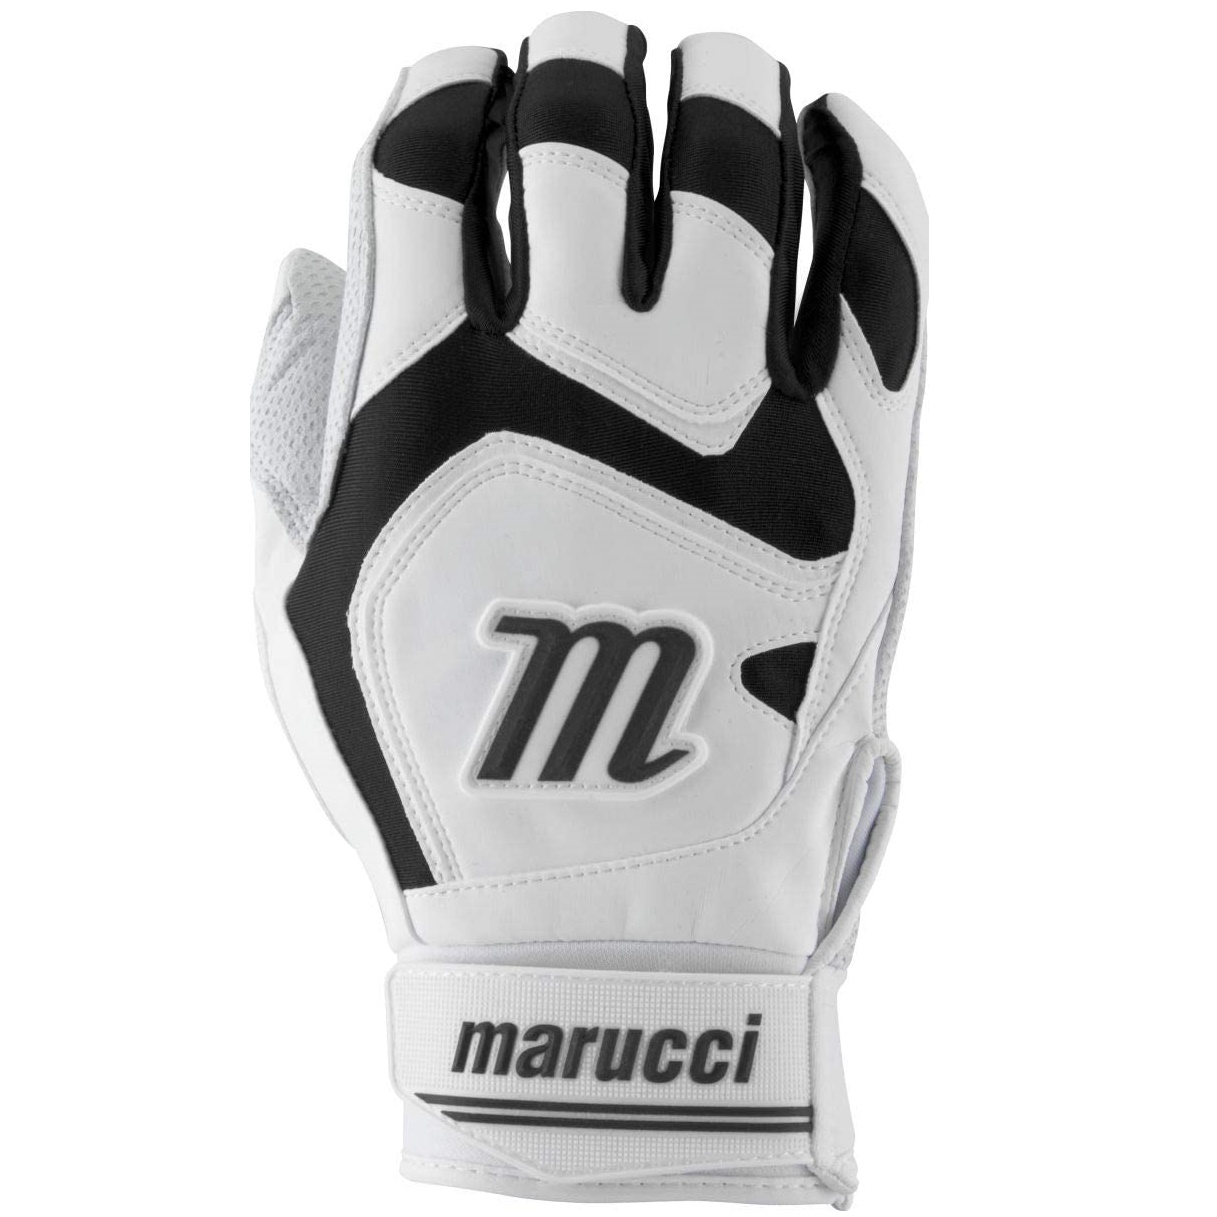 marucci-signature-youth-batting-gloves-black-youth-small MBGSGN2Y-BKW-YS Marucci  Digitally embossed perforated Cabretta sheepskin palm provides maximum grip and durability